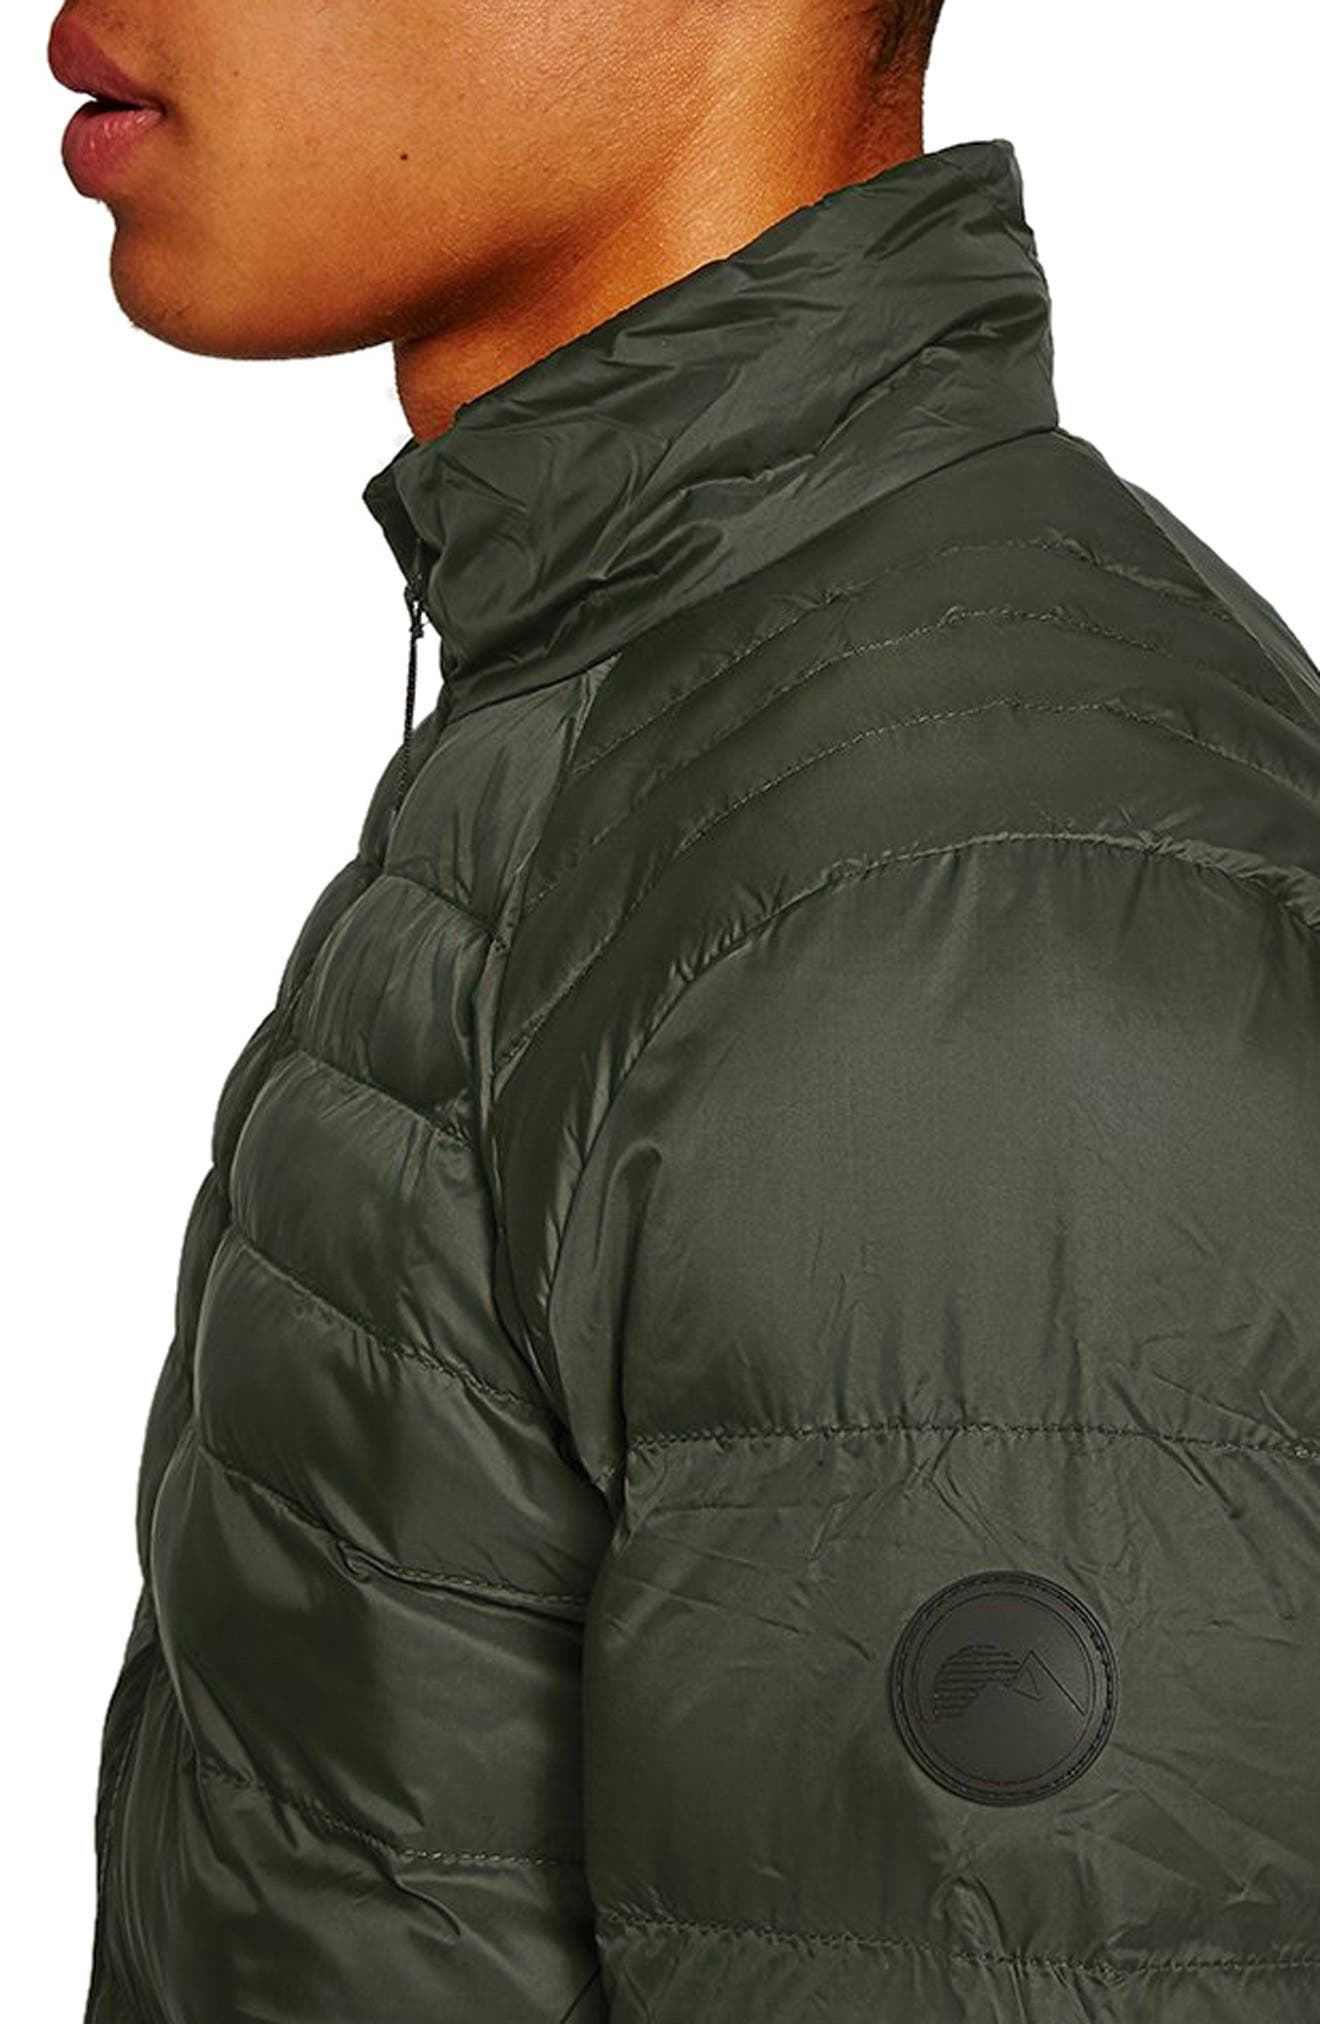 Mitchell Quiilted Nylon Jacket,                             Alternate thumbnail 4, color,                             GREEN